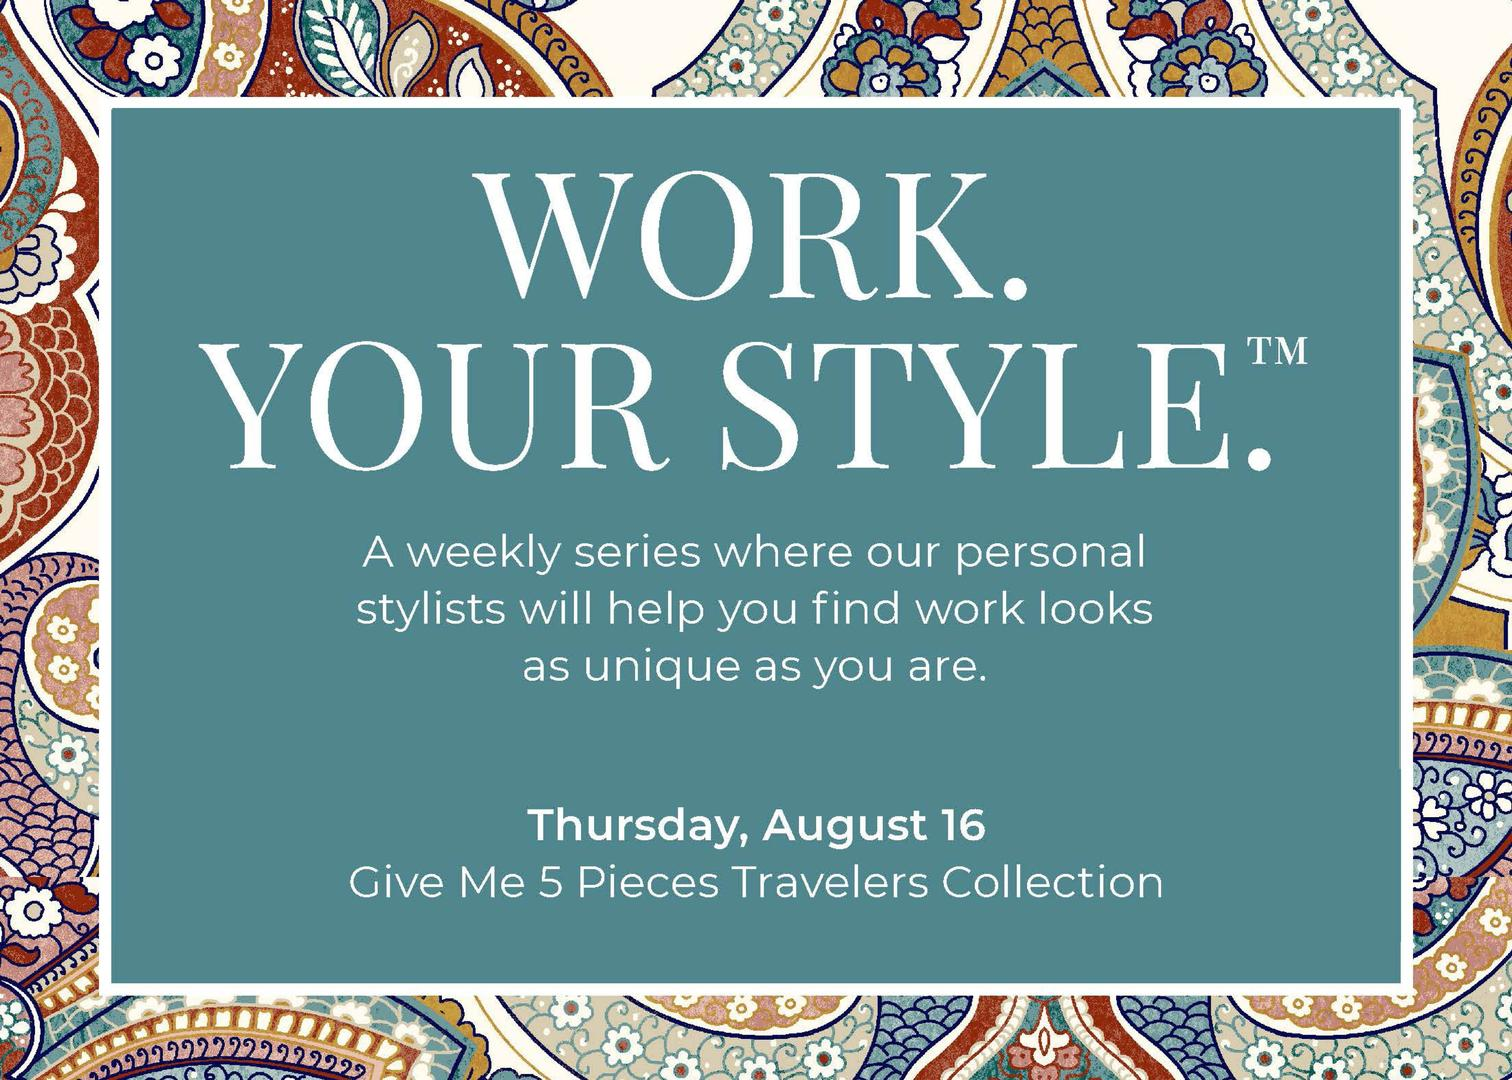 West Town Mall, Work You Style- Give Me 5 Pieces Travelers Collection  Event Image: 7600 Kingston Pike, Ste 1538A, Knoxville, TN 37919, US